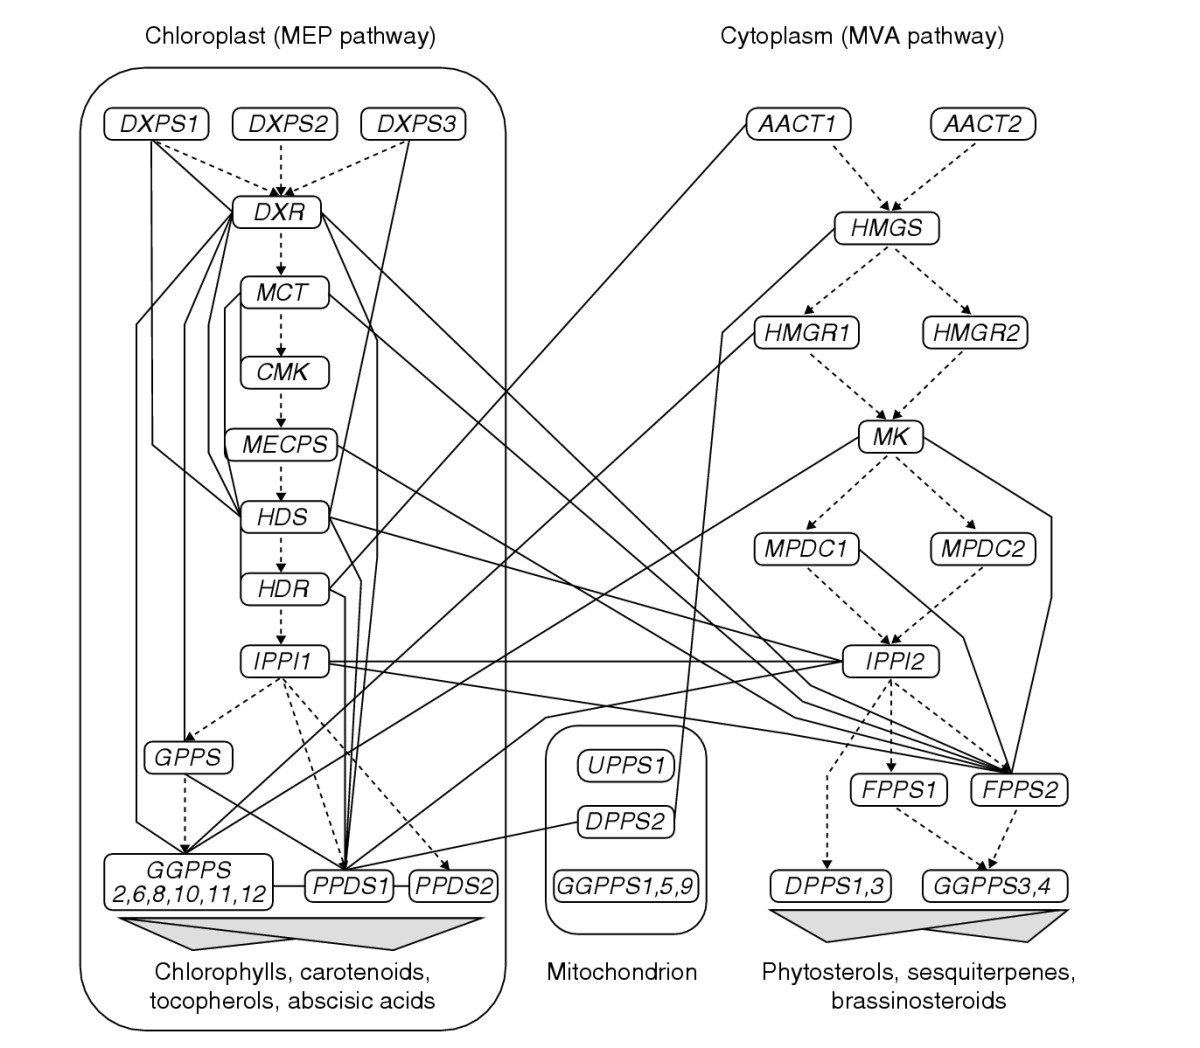 https://static-content.springer.com/image/art%3A10.1186%2Fgb-2004-5-11-r92/MediaObjects/13059_2004_Article_896_Fig2_HTML.jpg